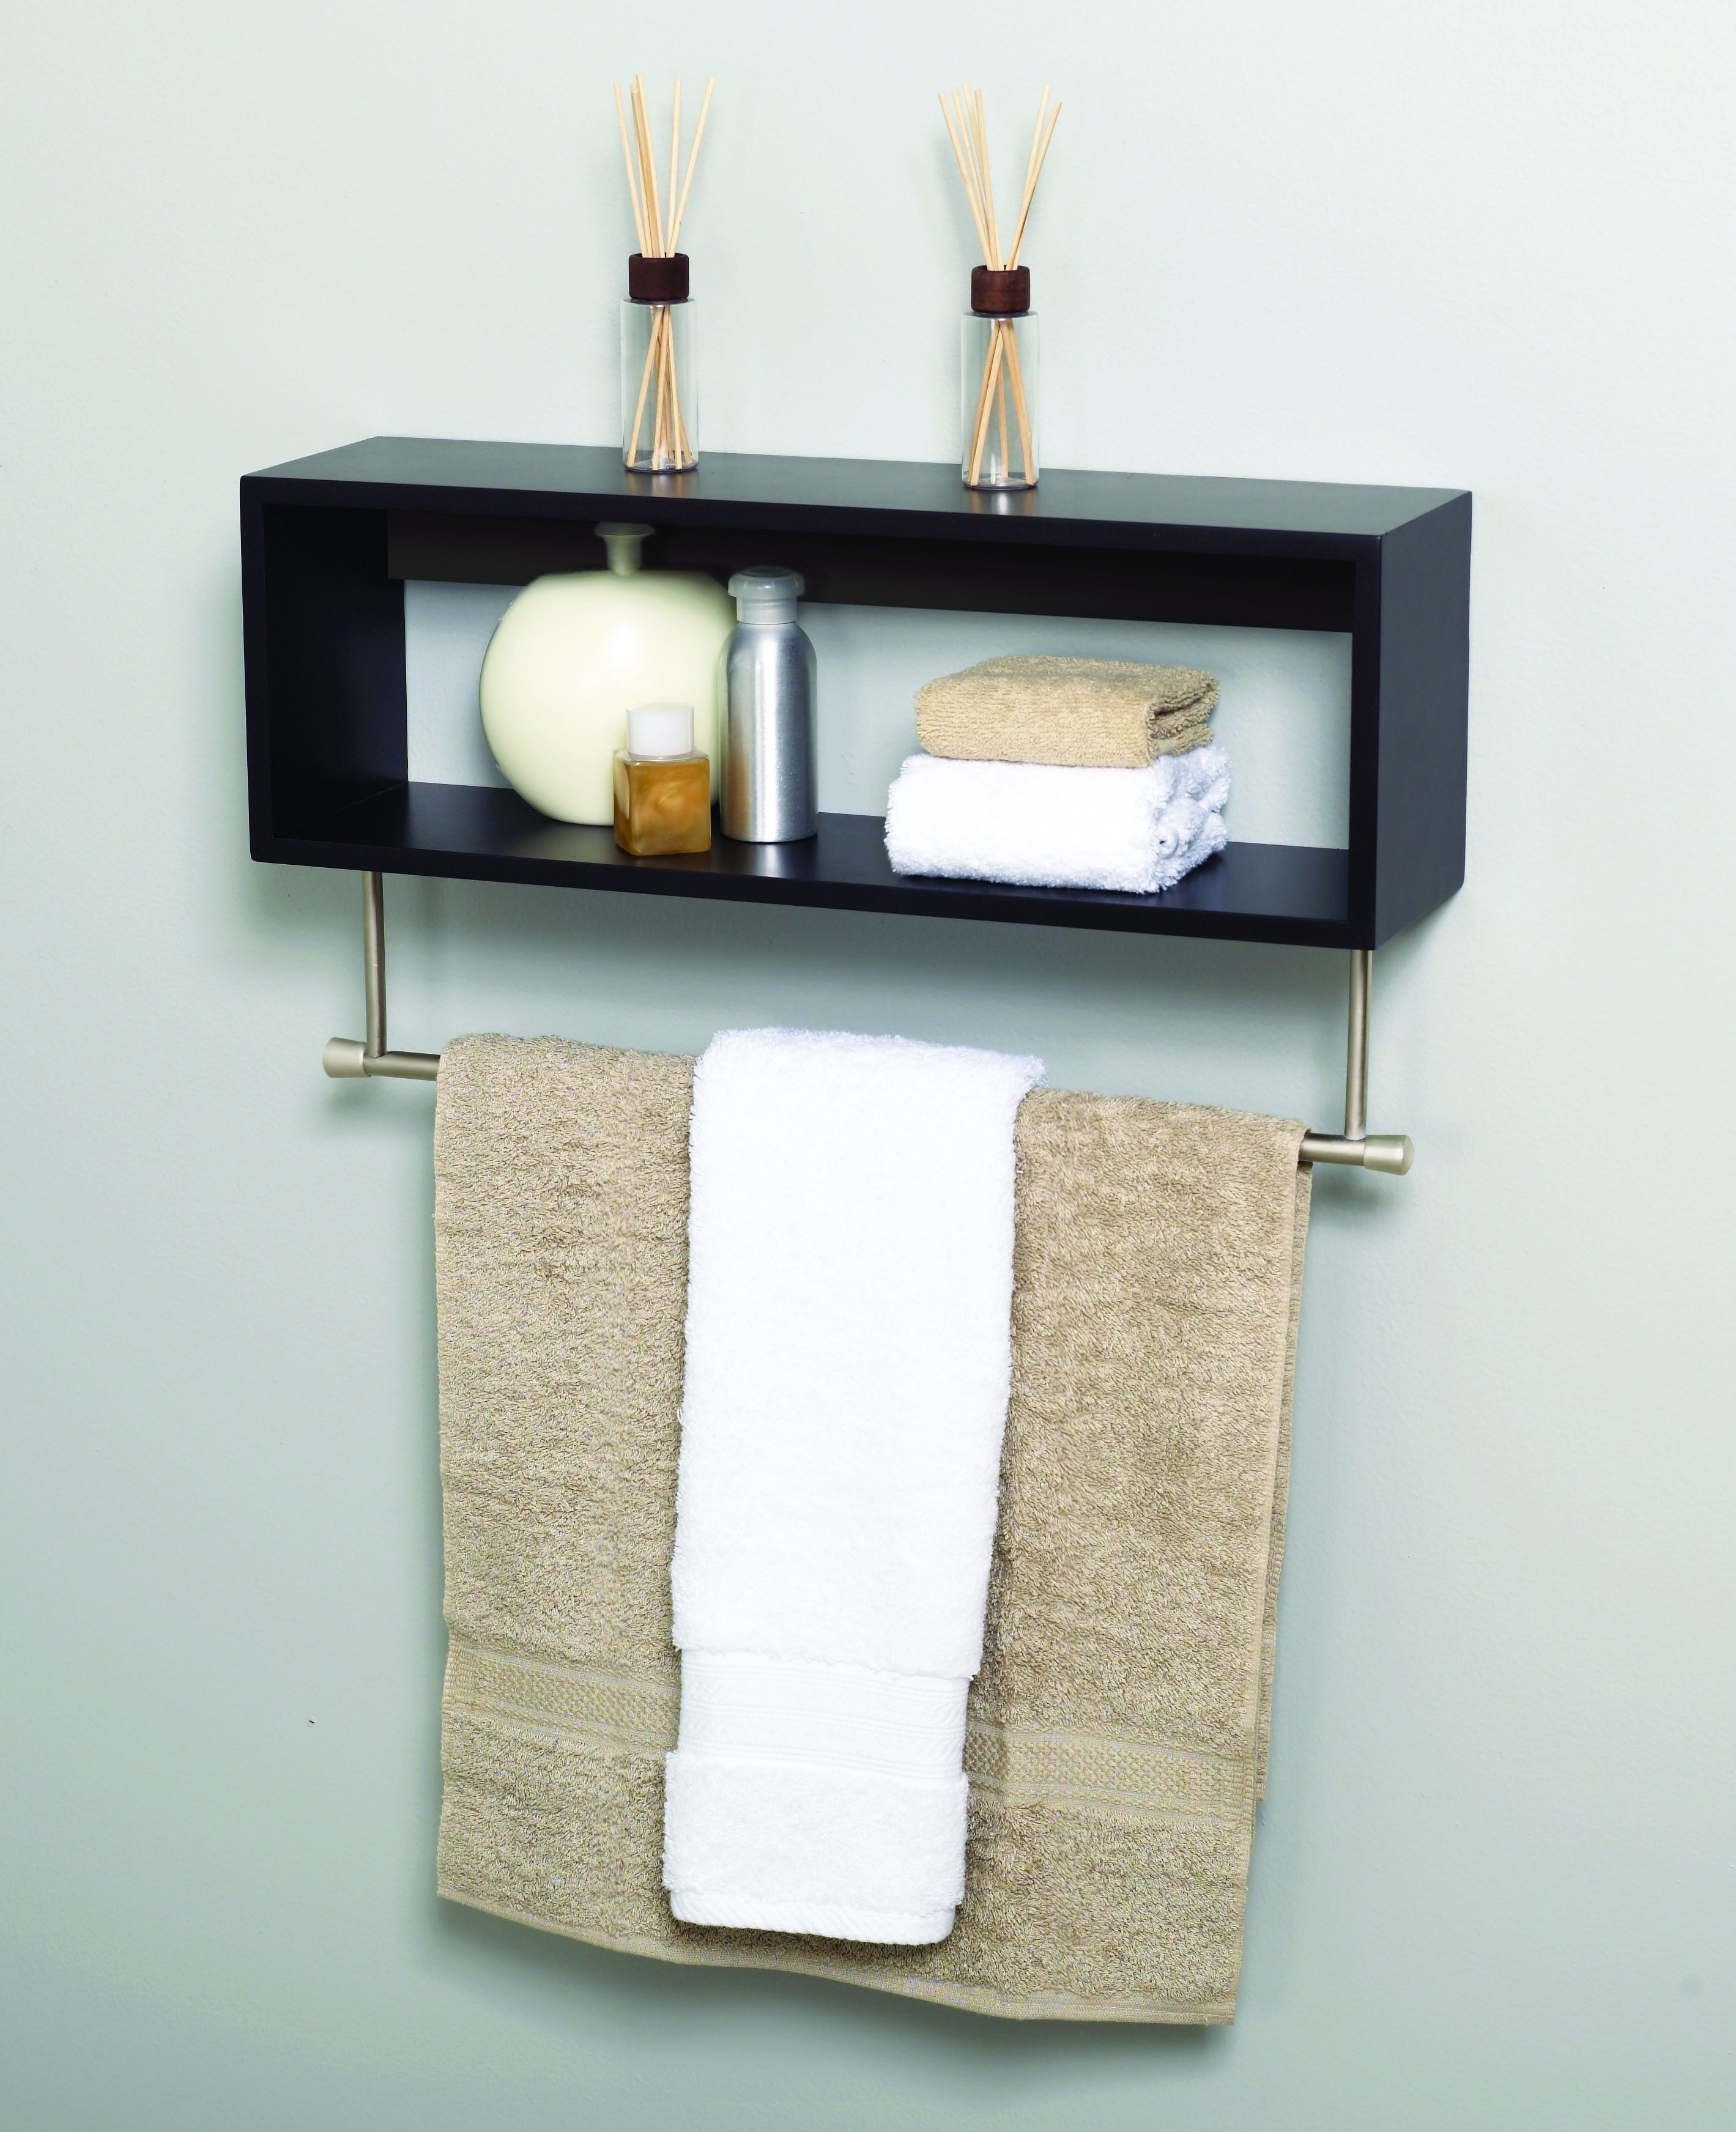 Bathroom Towel Bars And Shelves | Migrant Resource Network